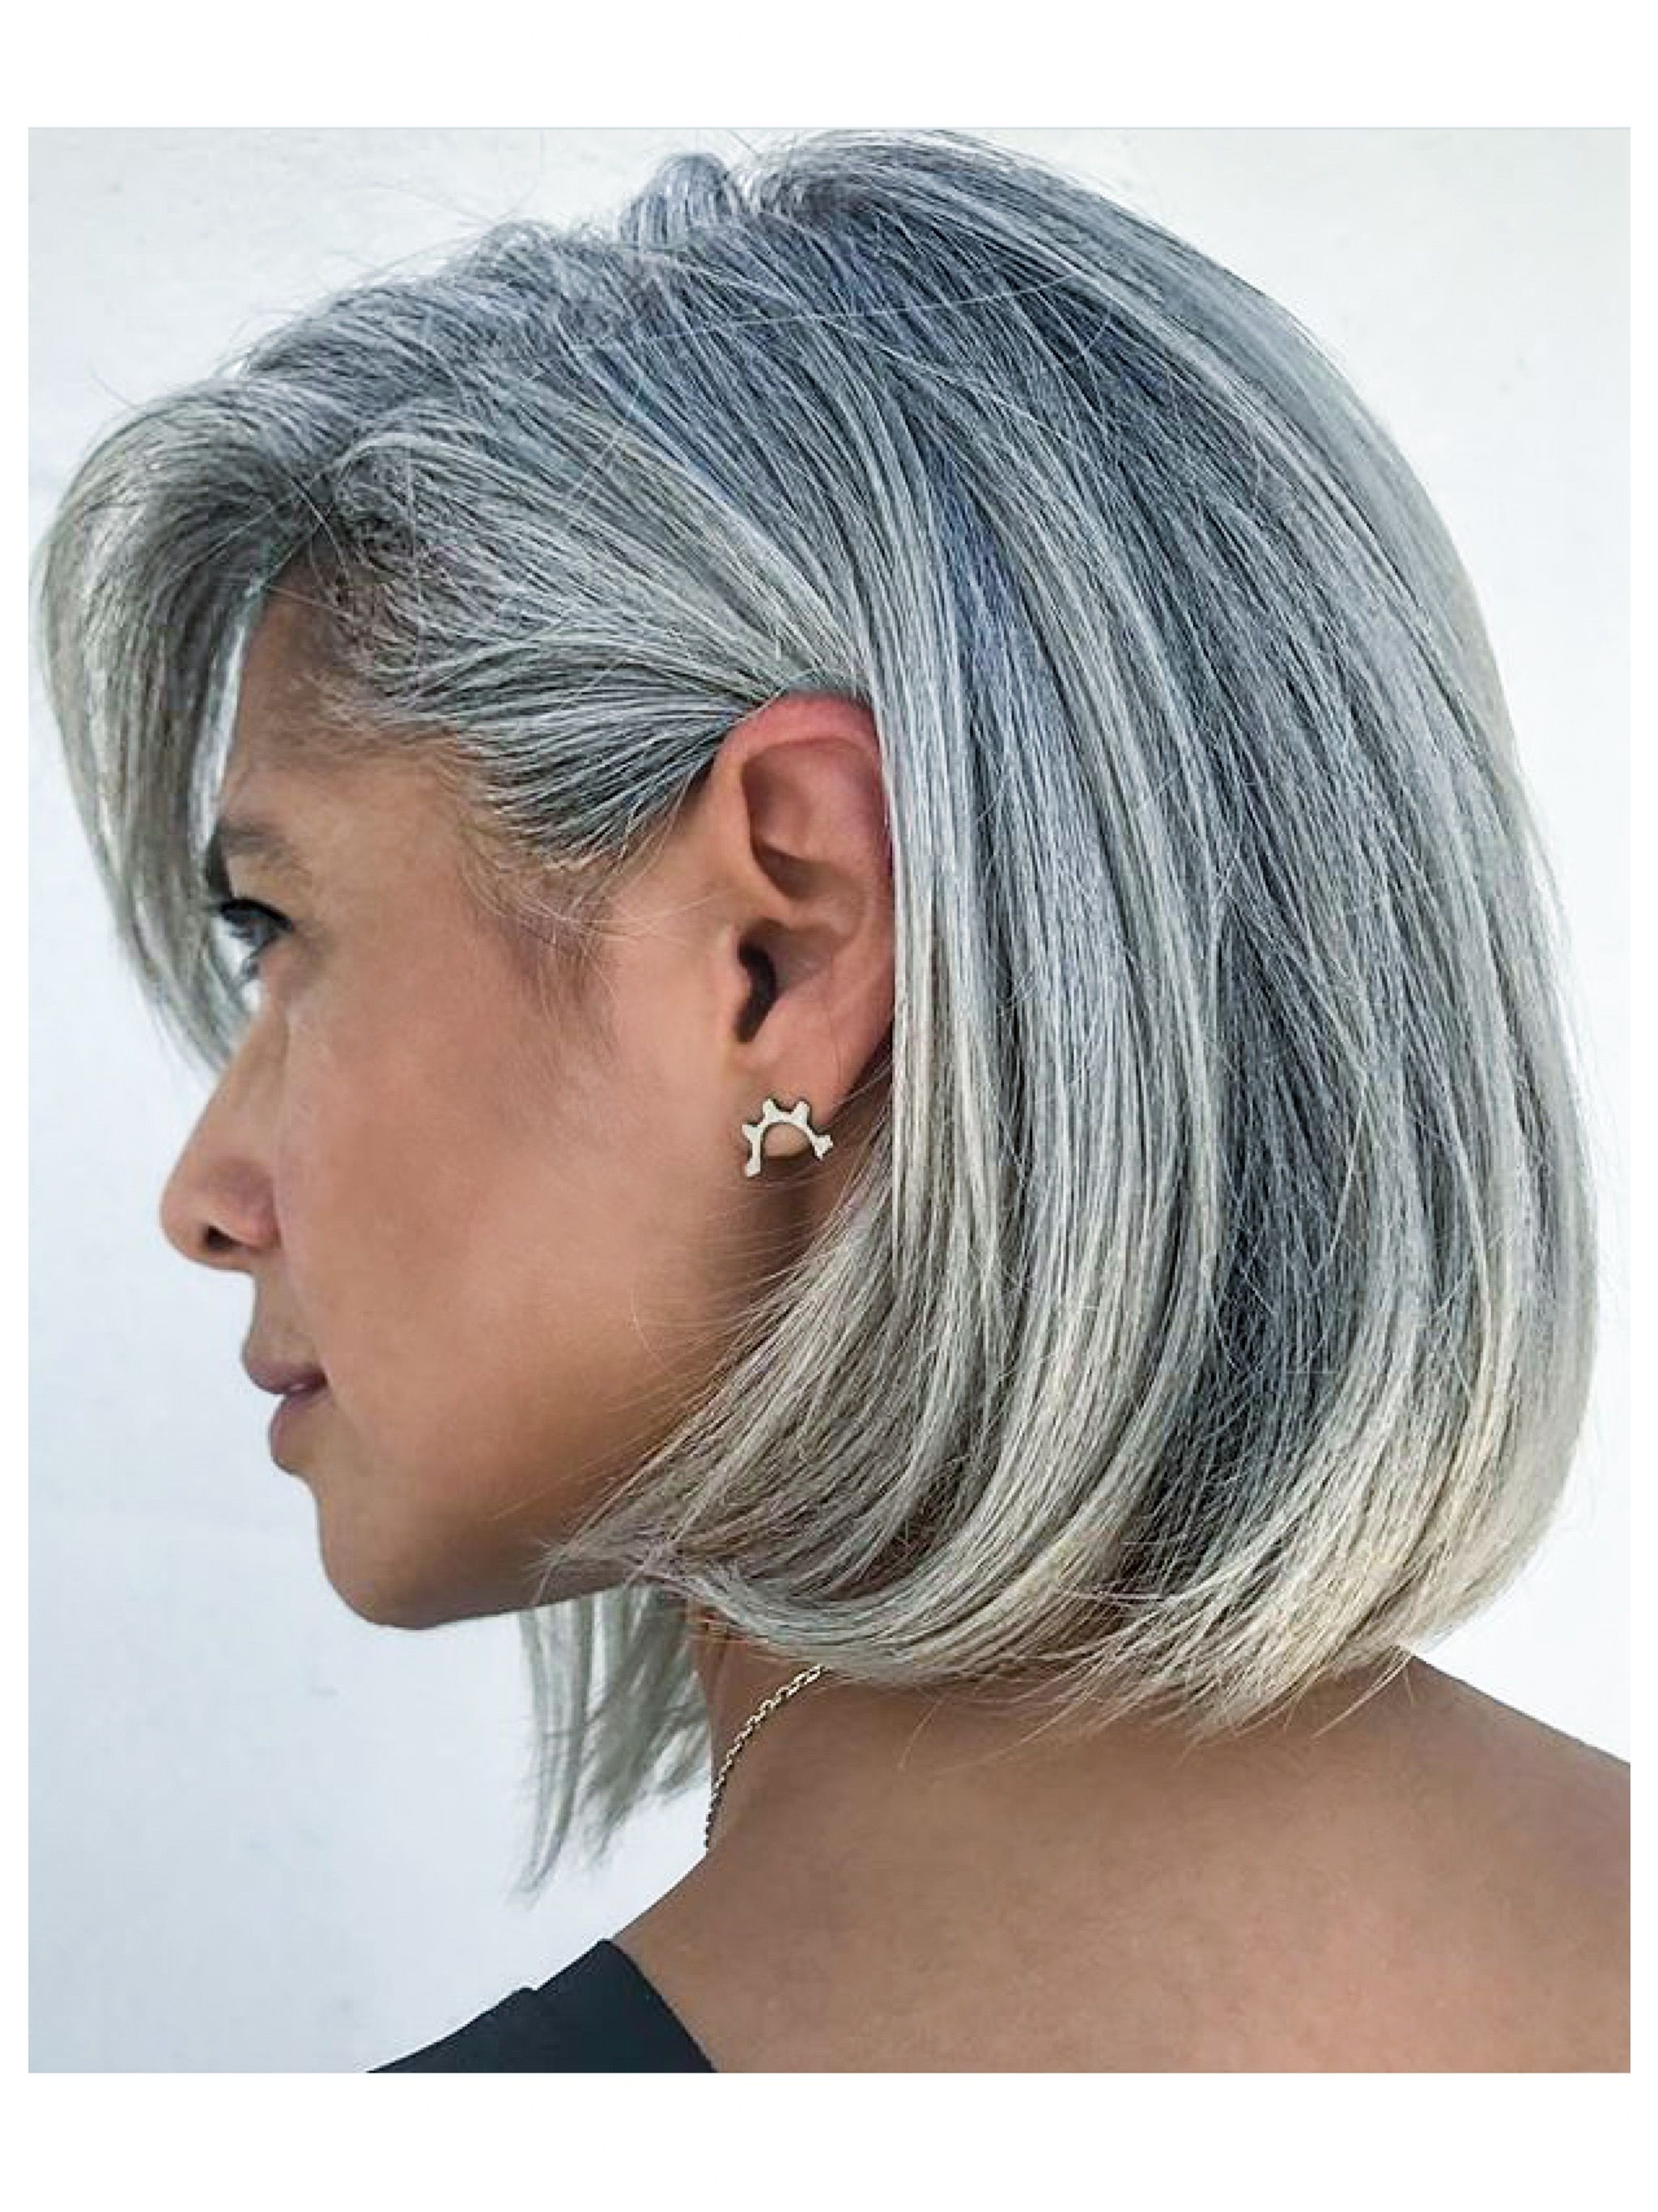 Wow Gorgeous head of hair Silver Foxes Pinterest